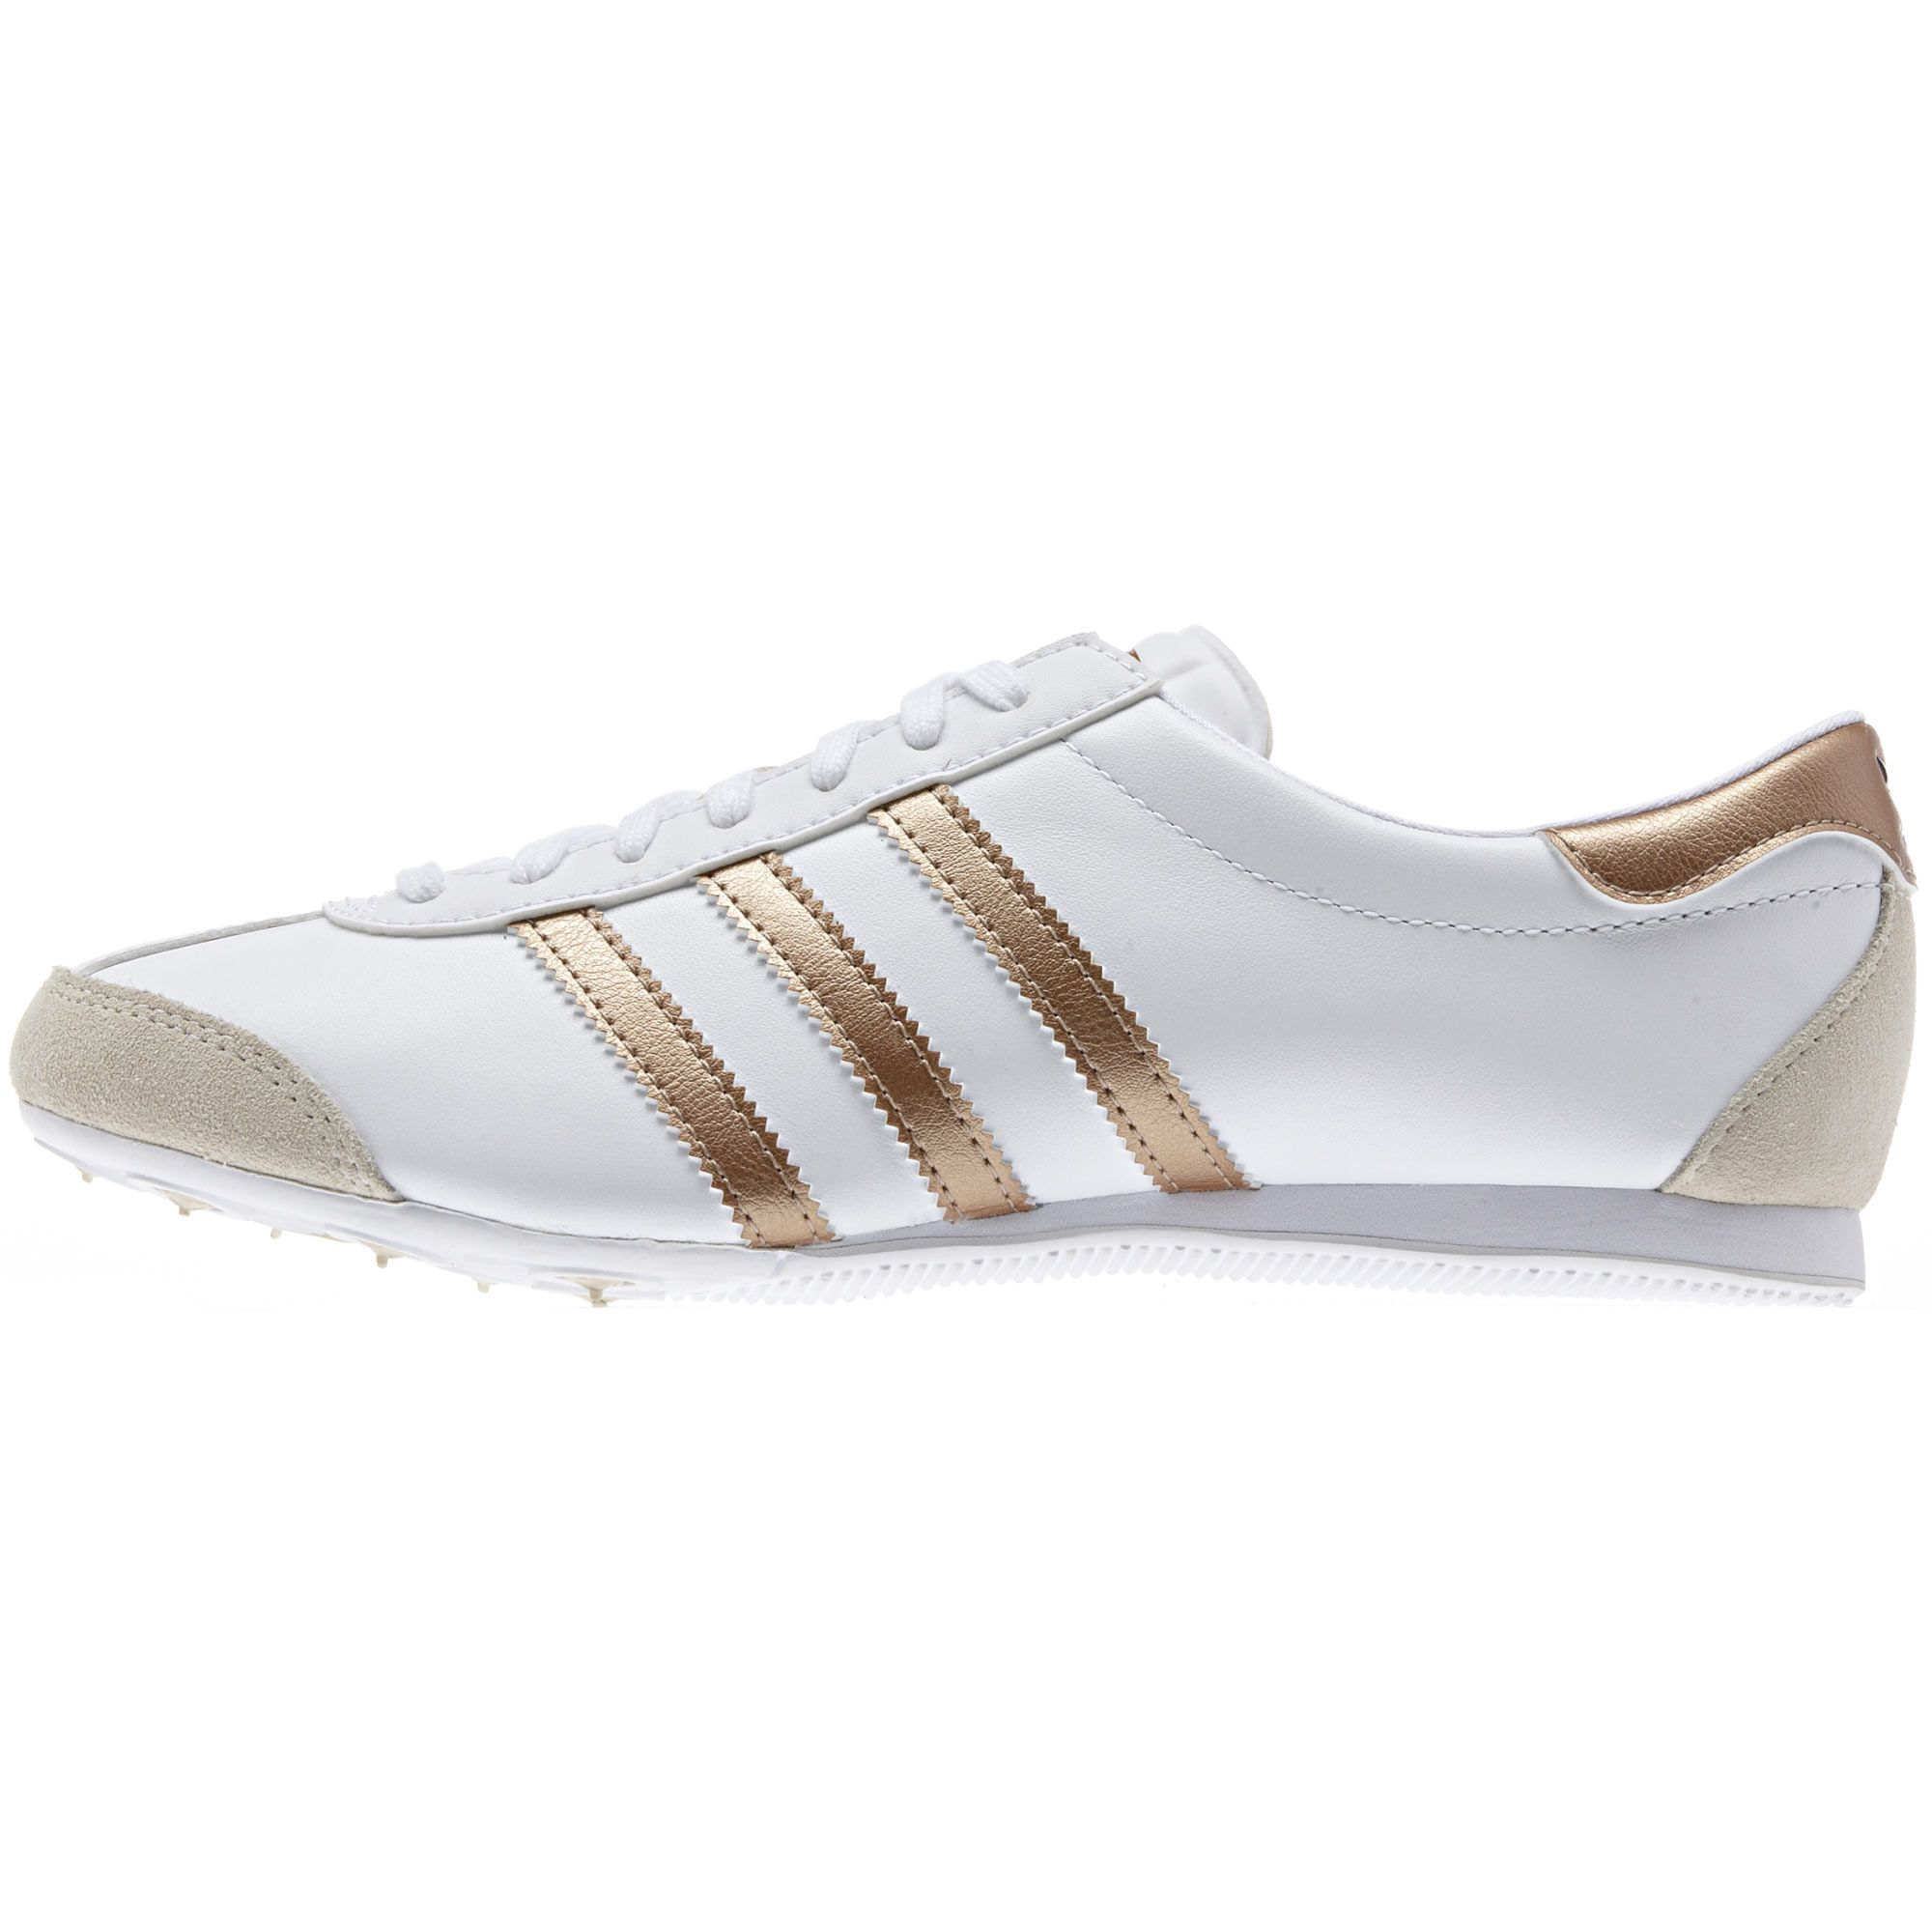 new product 542b0 122b4 adidas Zapatillas Casuales aditrack Mujer   adidas Argentina